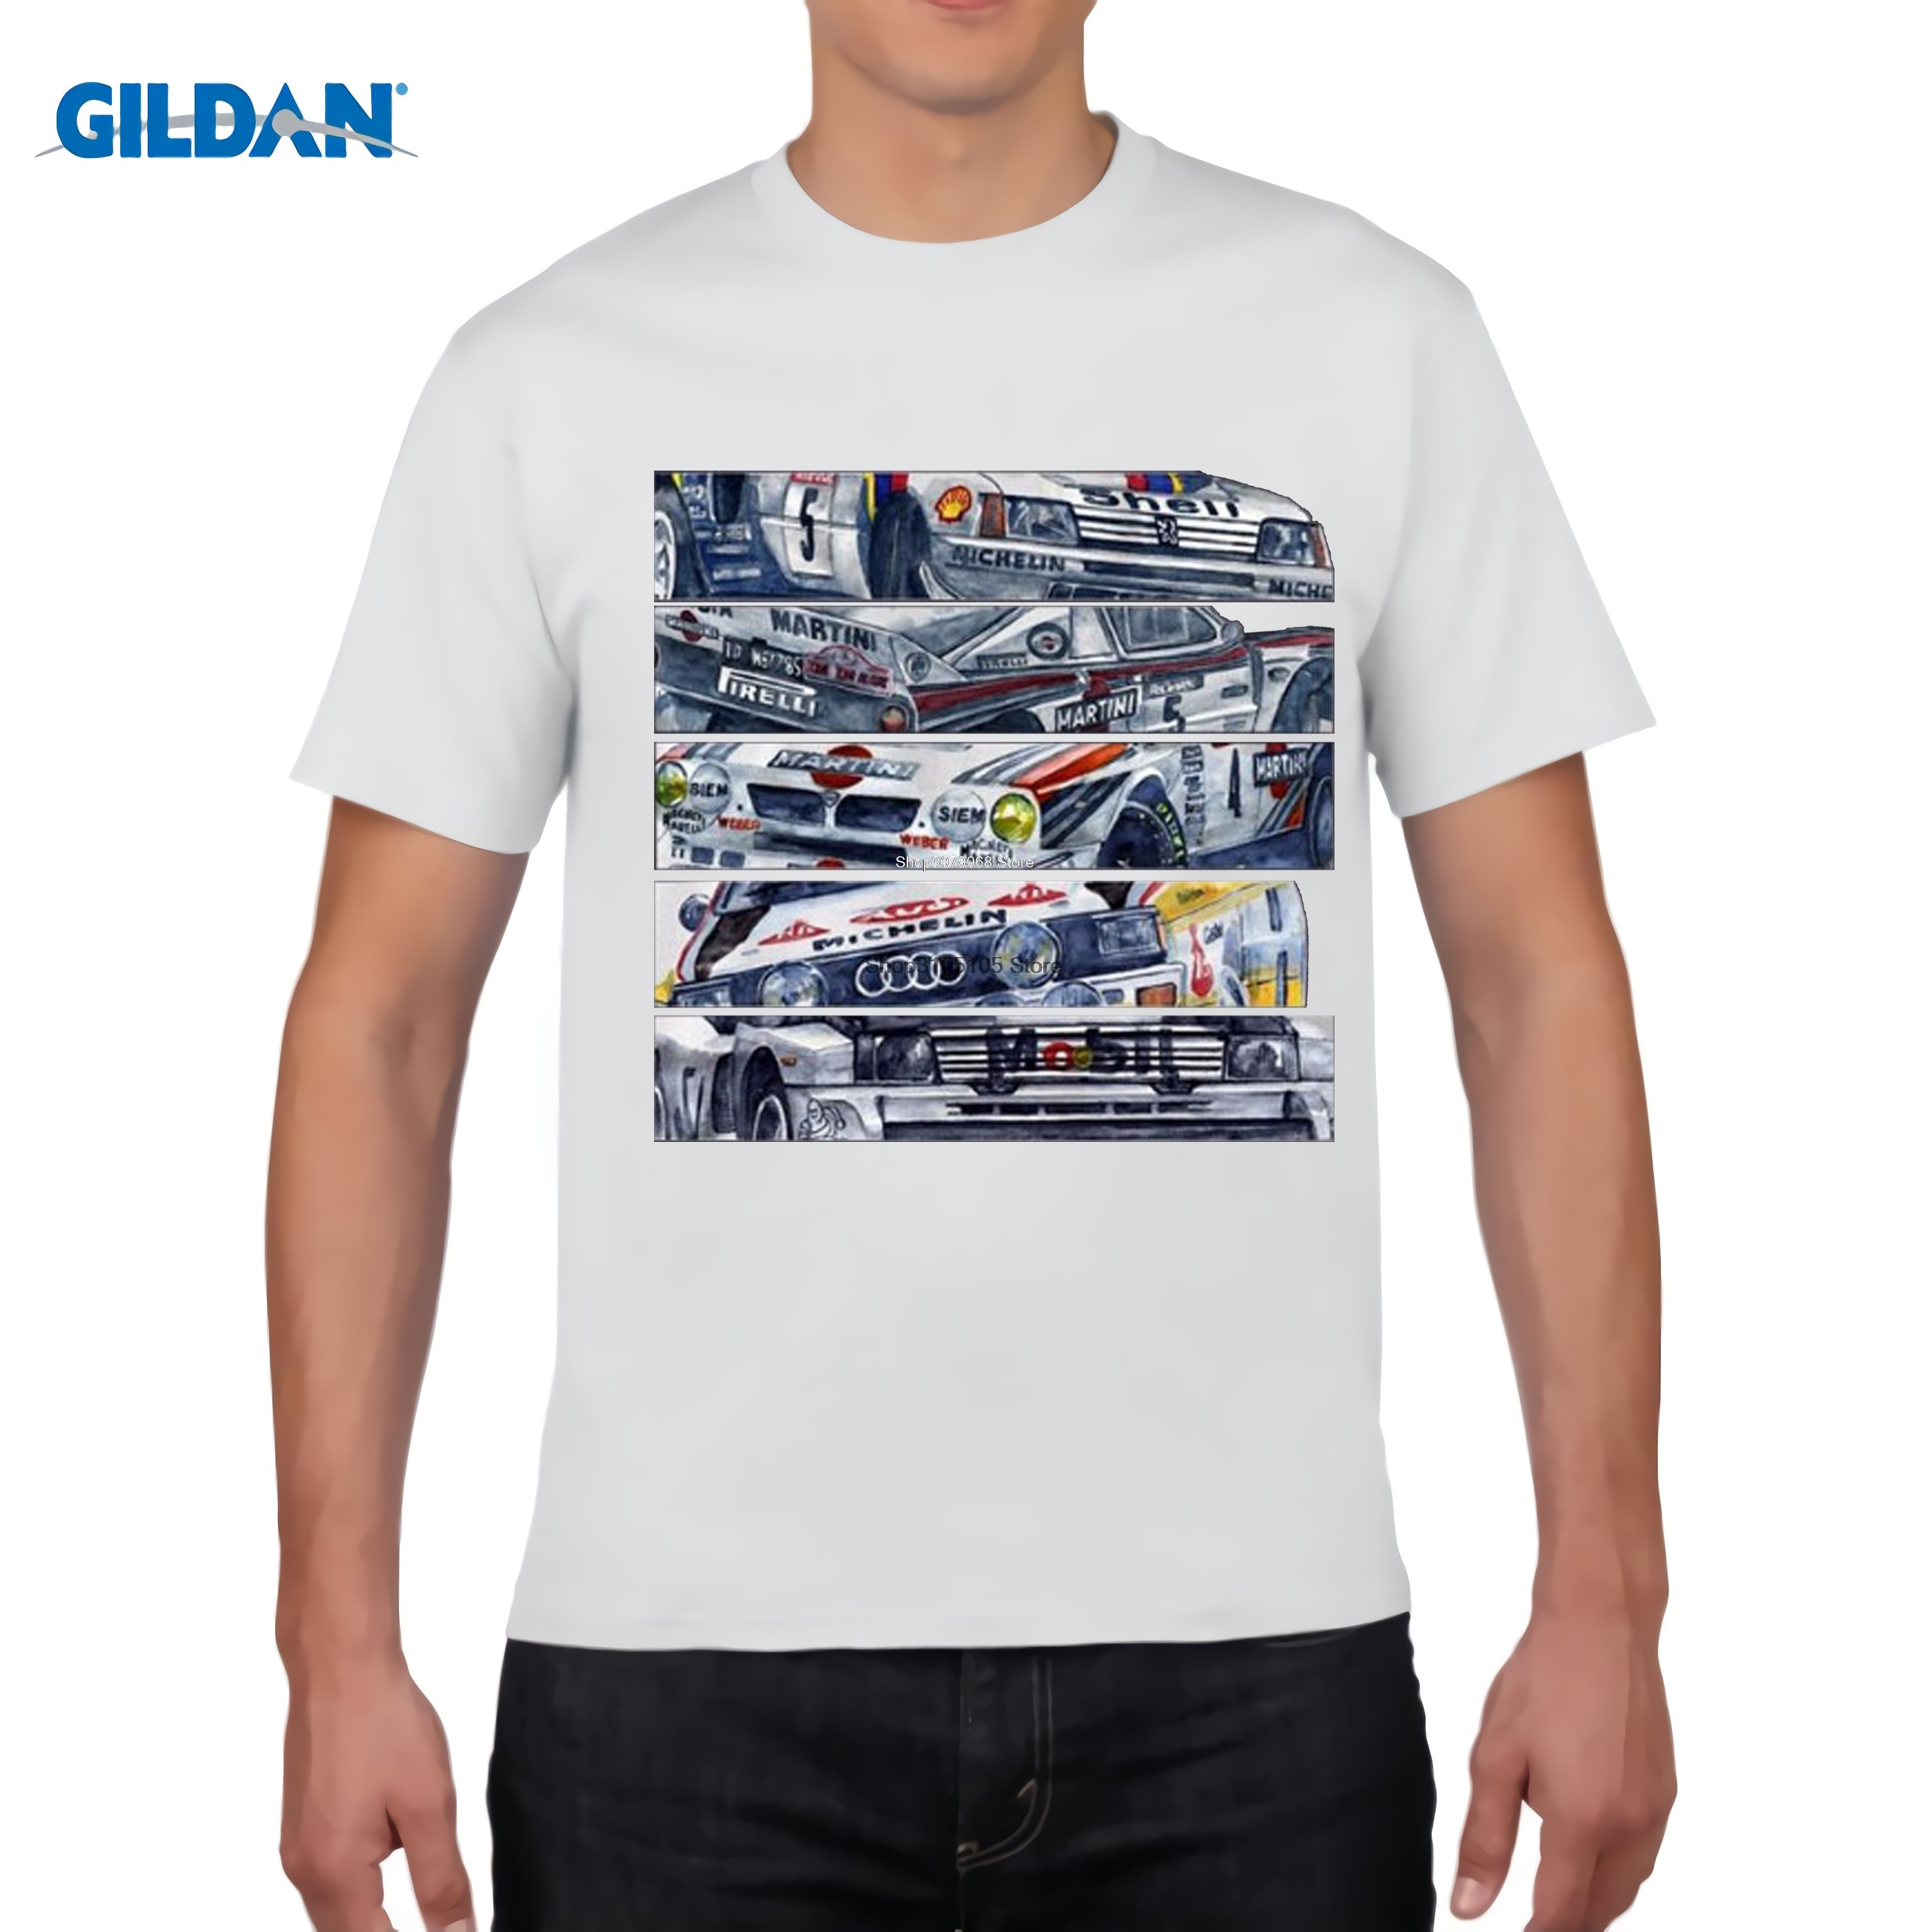 GILDAN designer t shirt 2017 Fashion Men O Neck Shirt New T-Shirt Rally Group B MG Custom Print 100% Cotton Retro Tee Shirt